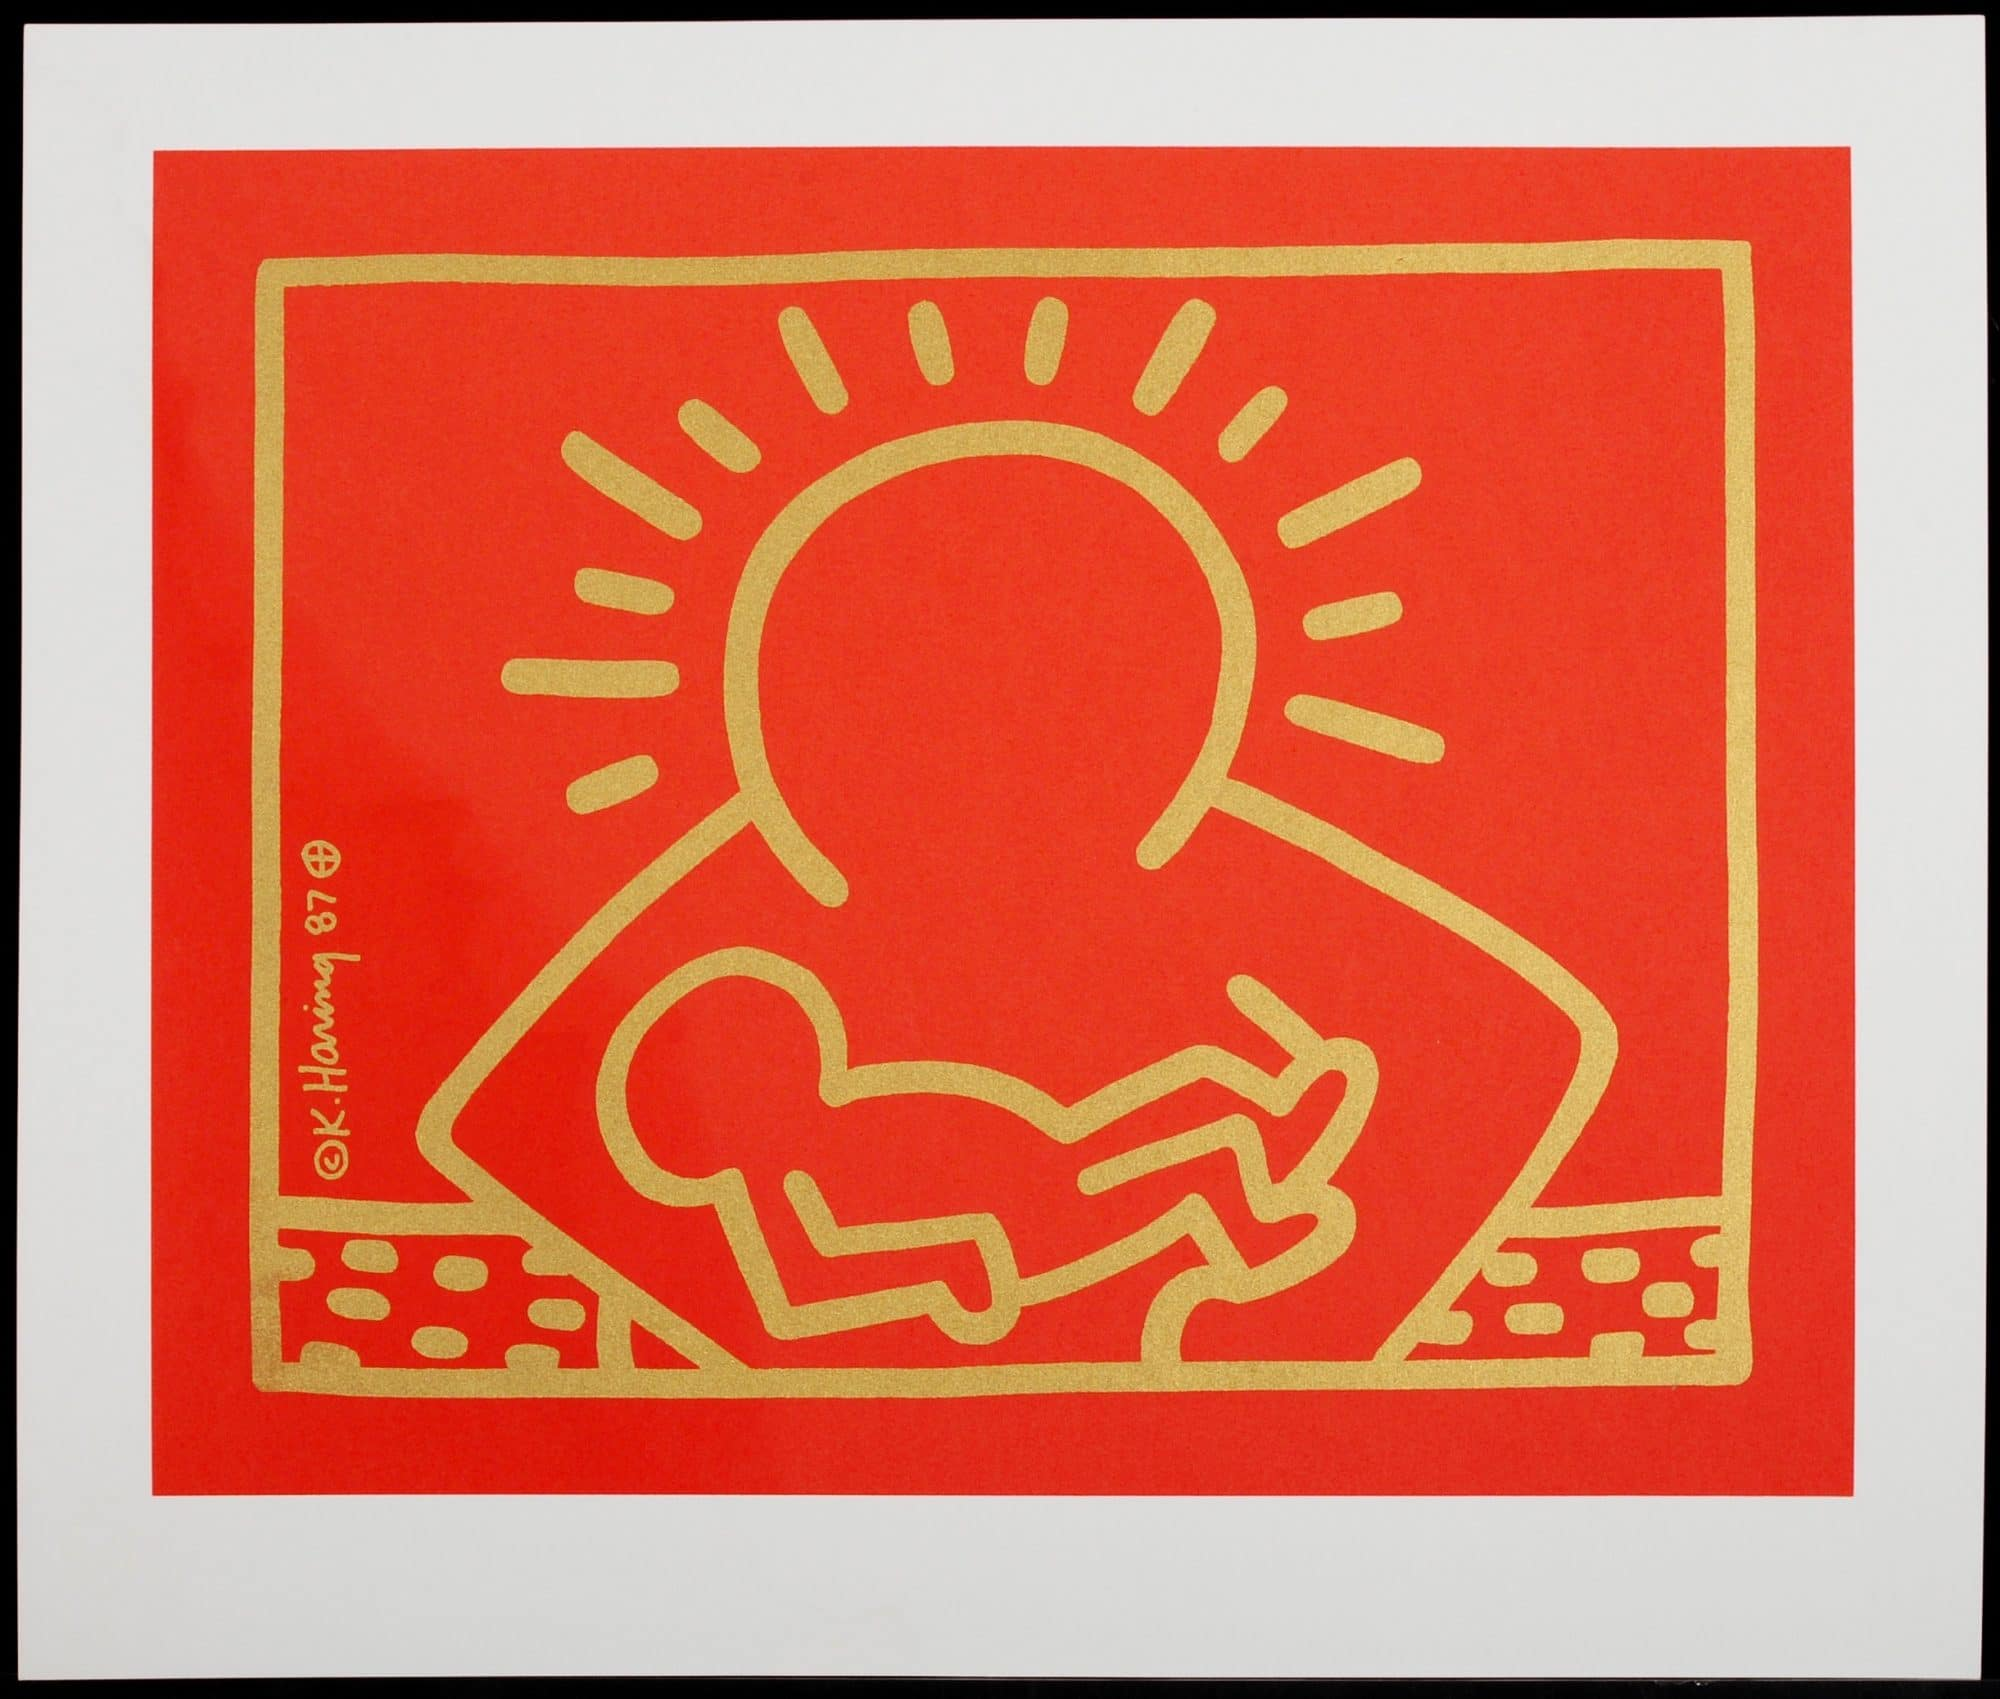 A Very Special Christmas.Keith Haring Original Silkscreen Print Of A Very Special